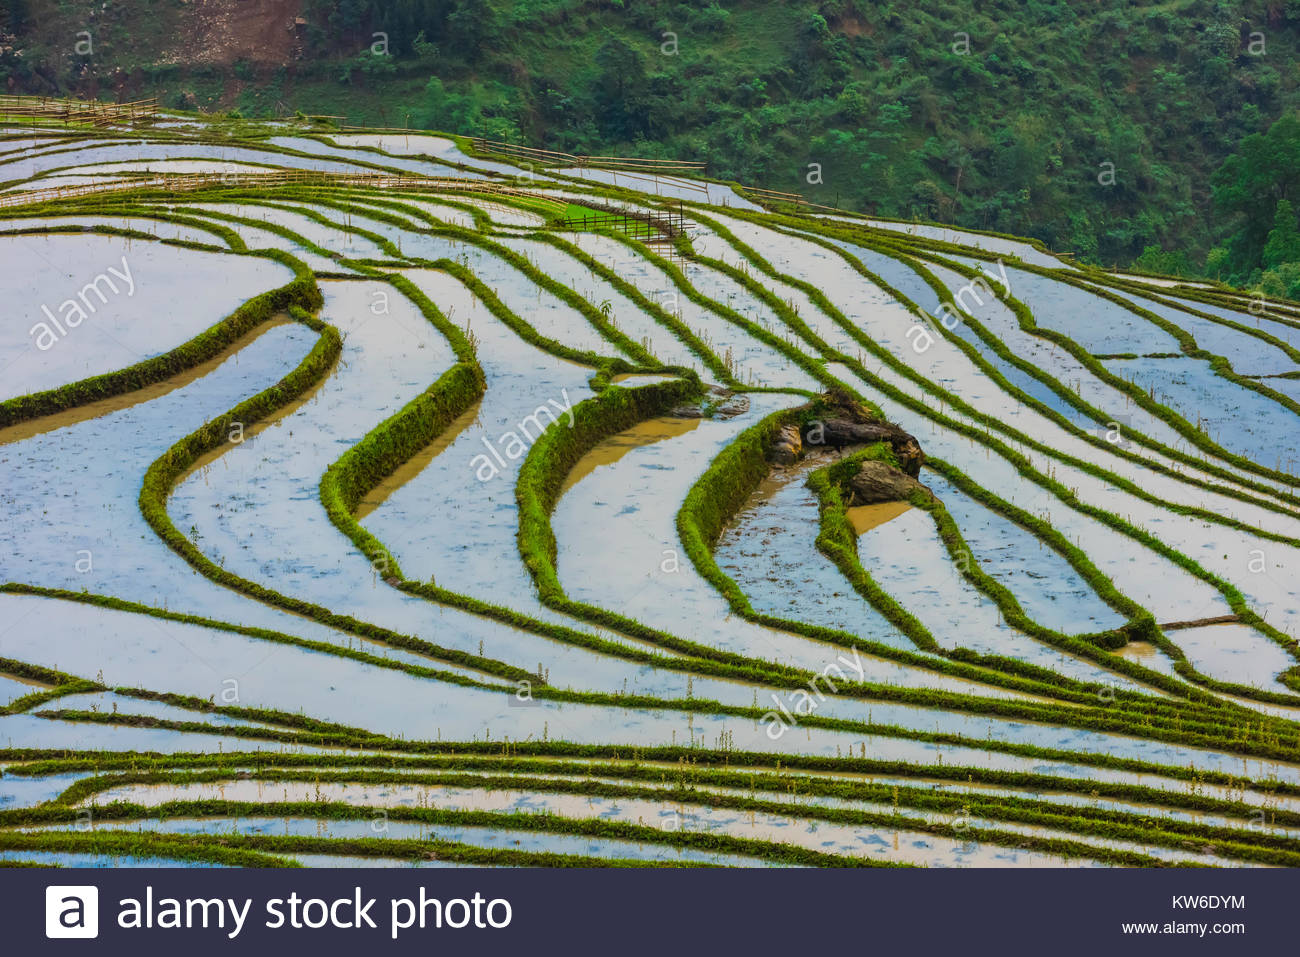 Intricate patterns of the rice terraces in the Muong Hoa Valley near Sapa, Vietnam. - Stock Image